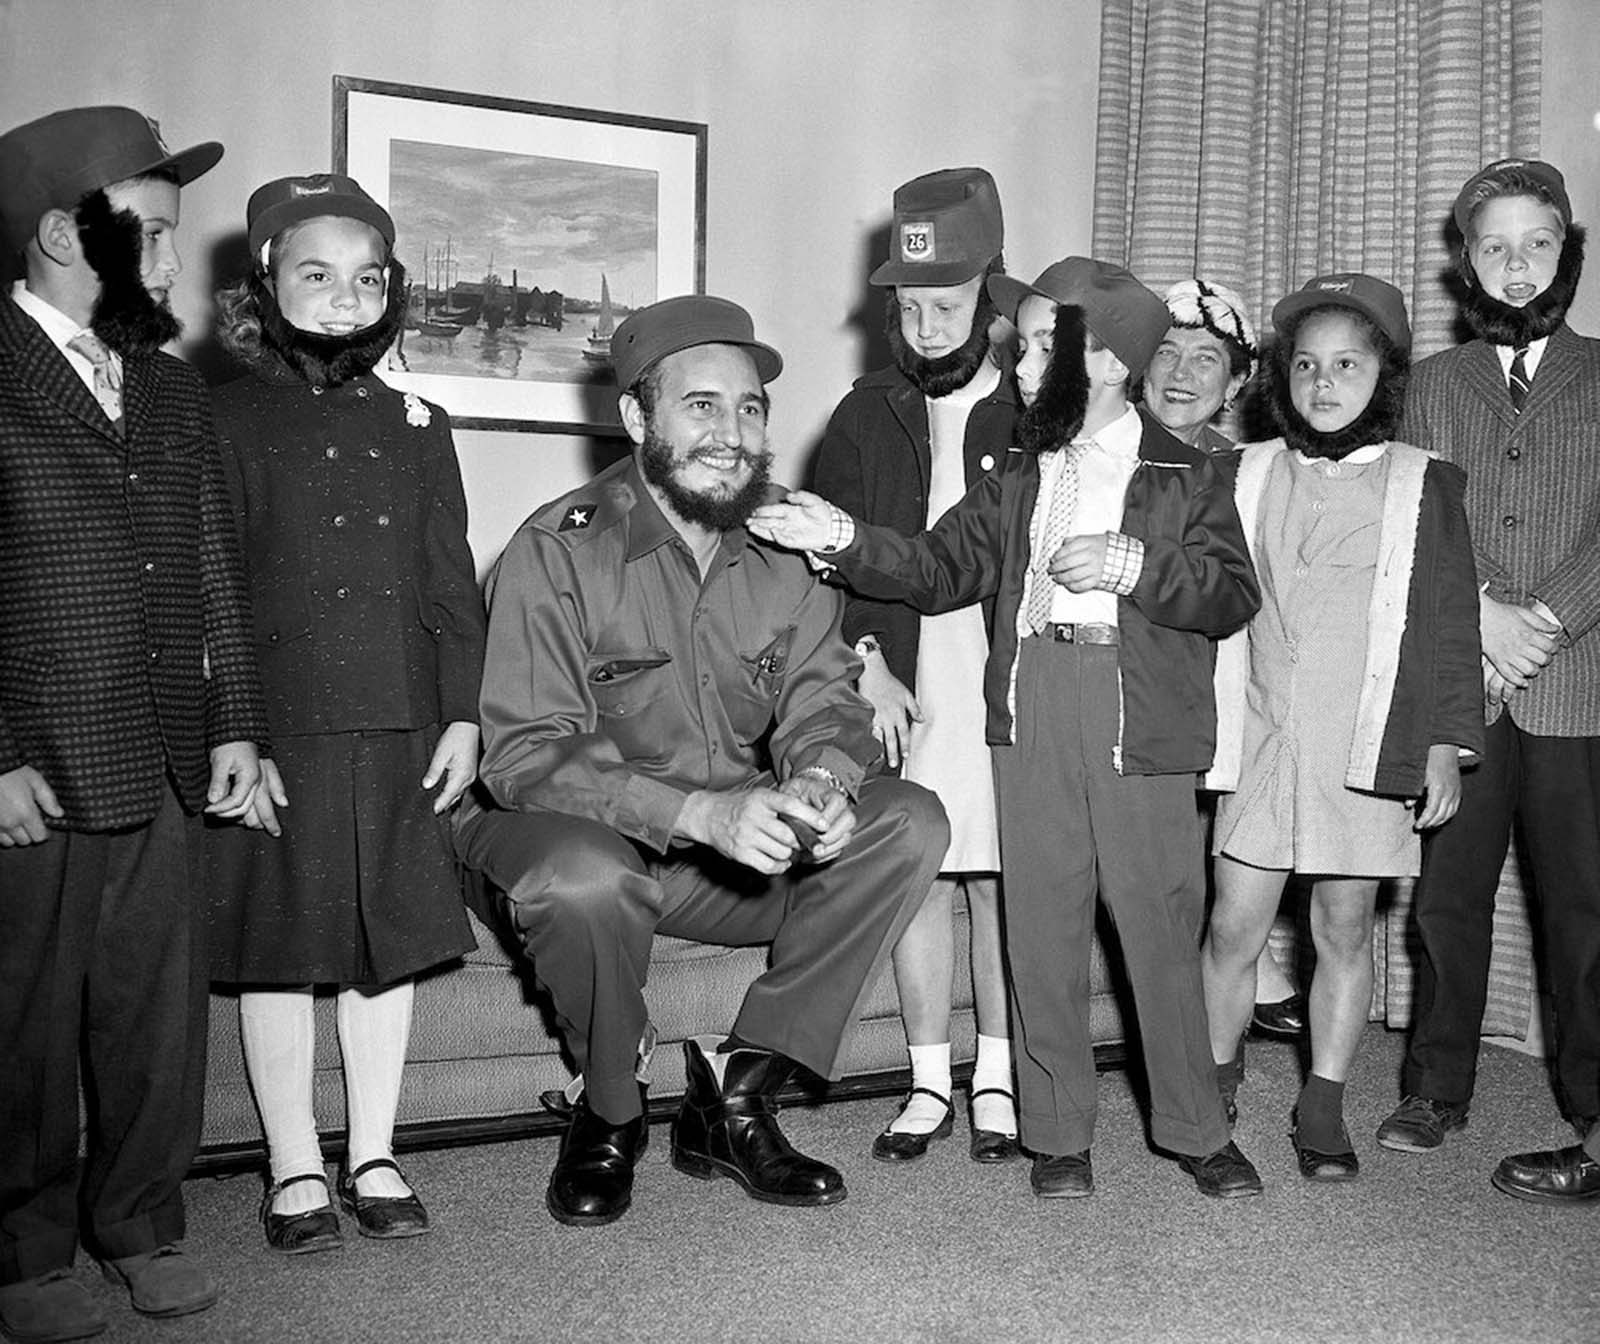 Youngsters admire Fidel Castro's beard during a visit to his hotel. The children attended a Queens school with Castro's son. The boy was secretly living In New York while his father led the Cuban revolution. Left to right: Gene Wolf, Kathy Johnston, Kathy Tableman, David Friedlander, Karen Leland and Robert Boyle.